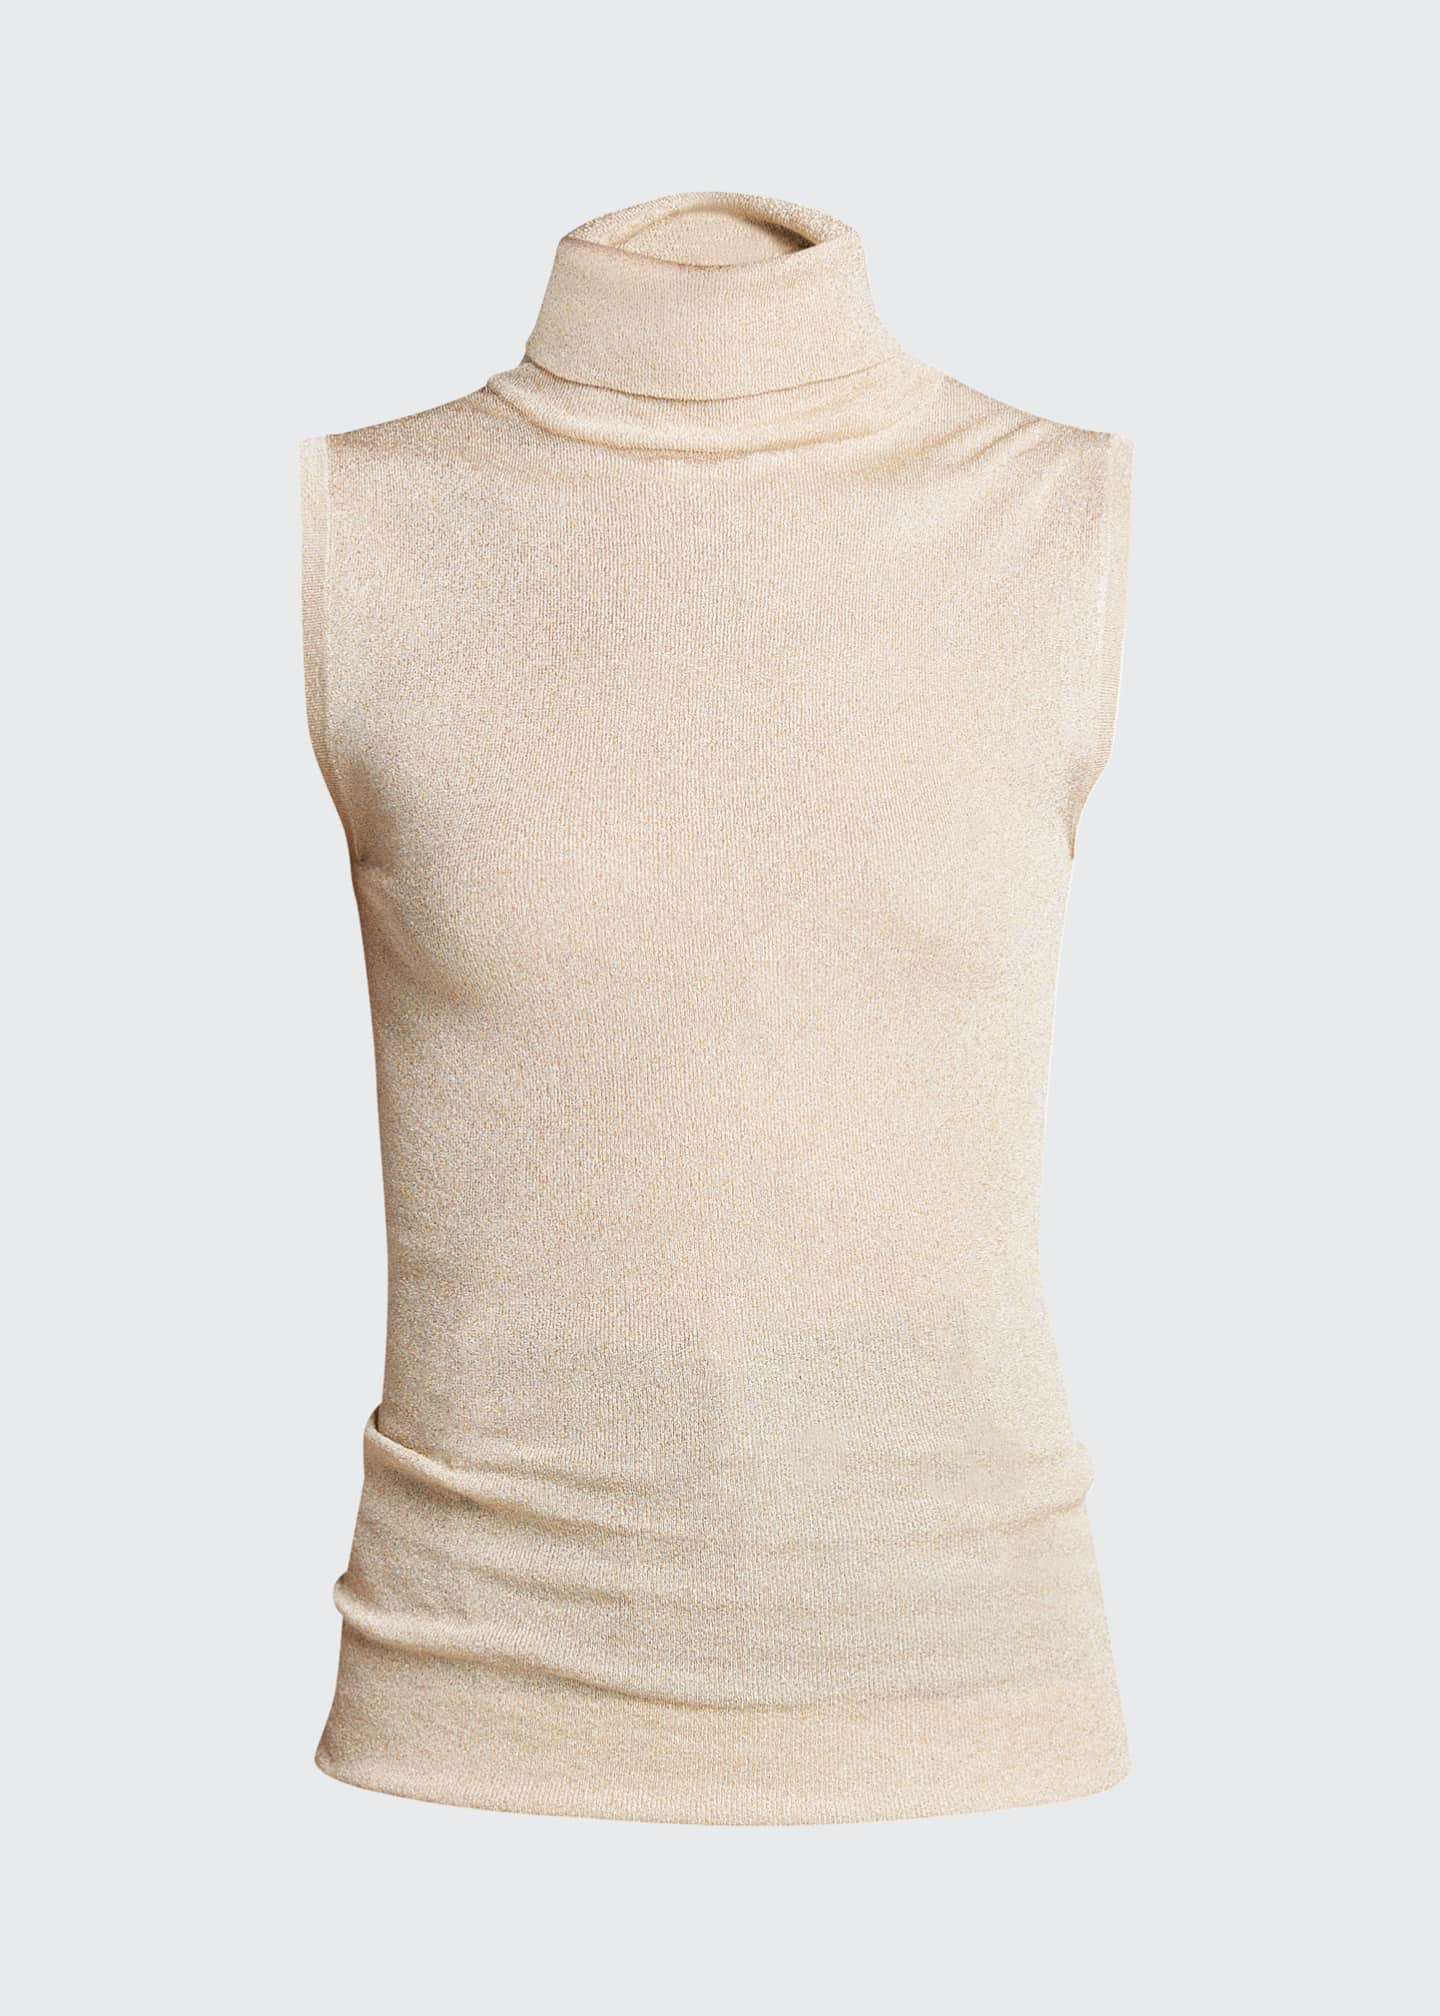 Image 5 of 5: Sleeveless Metallic Turtleneck Top